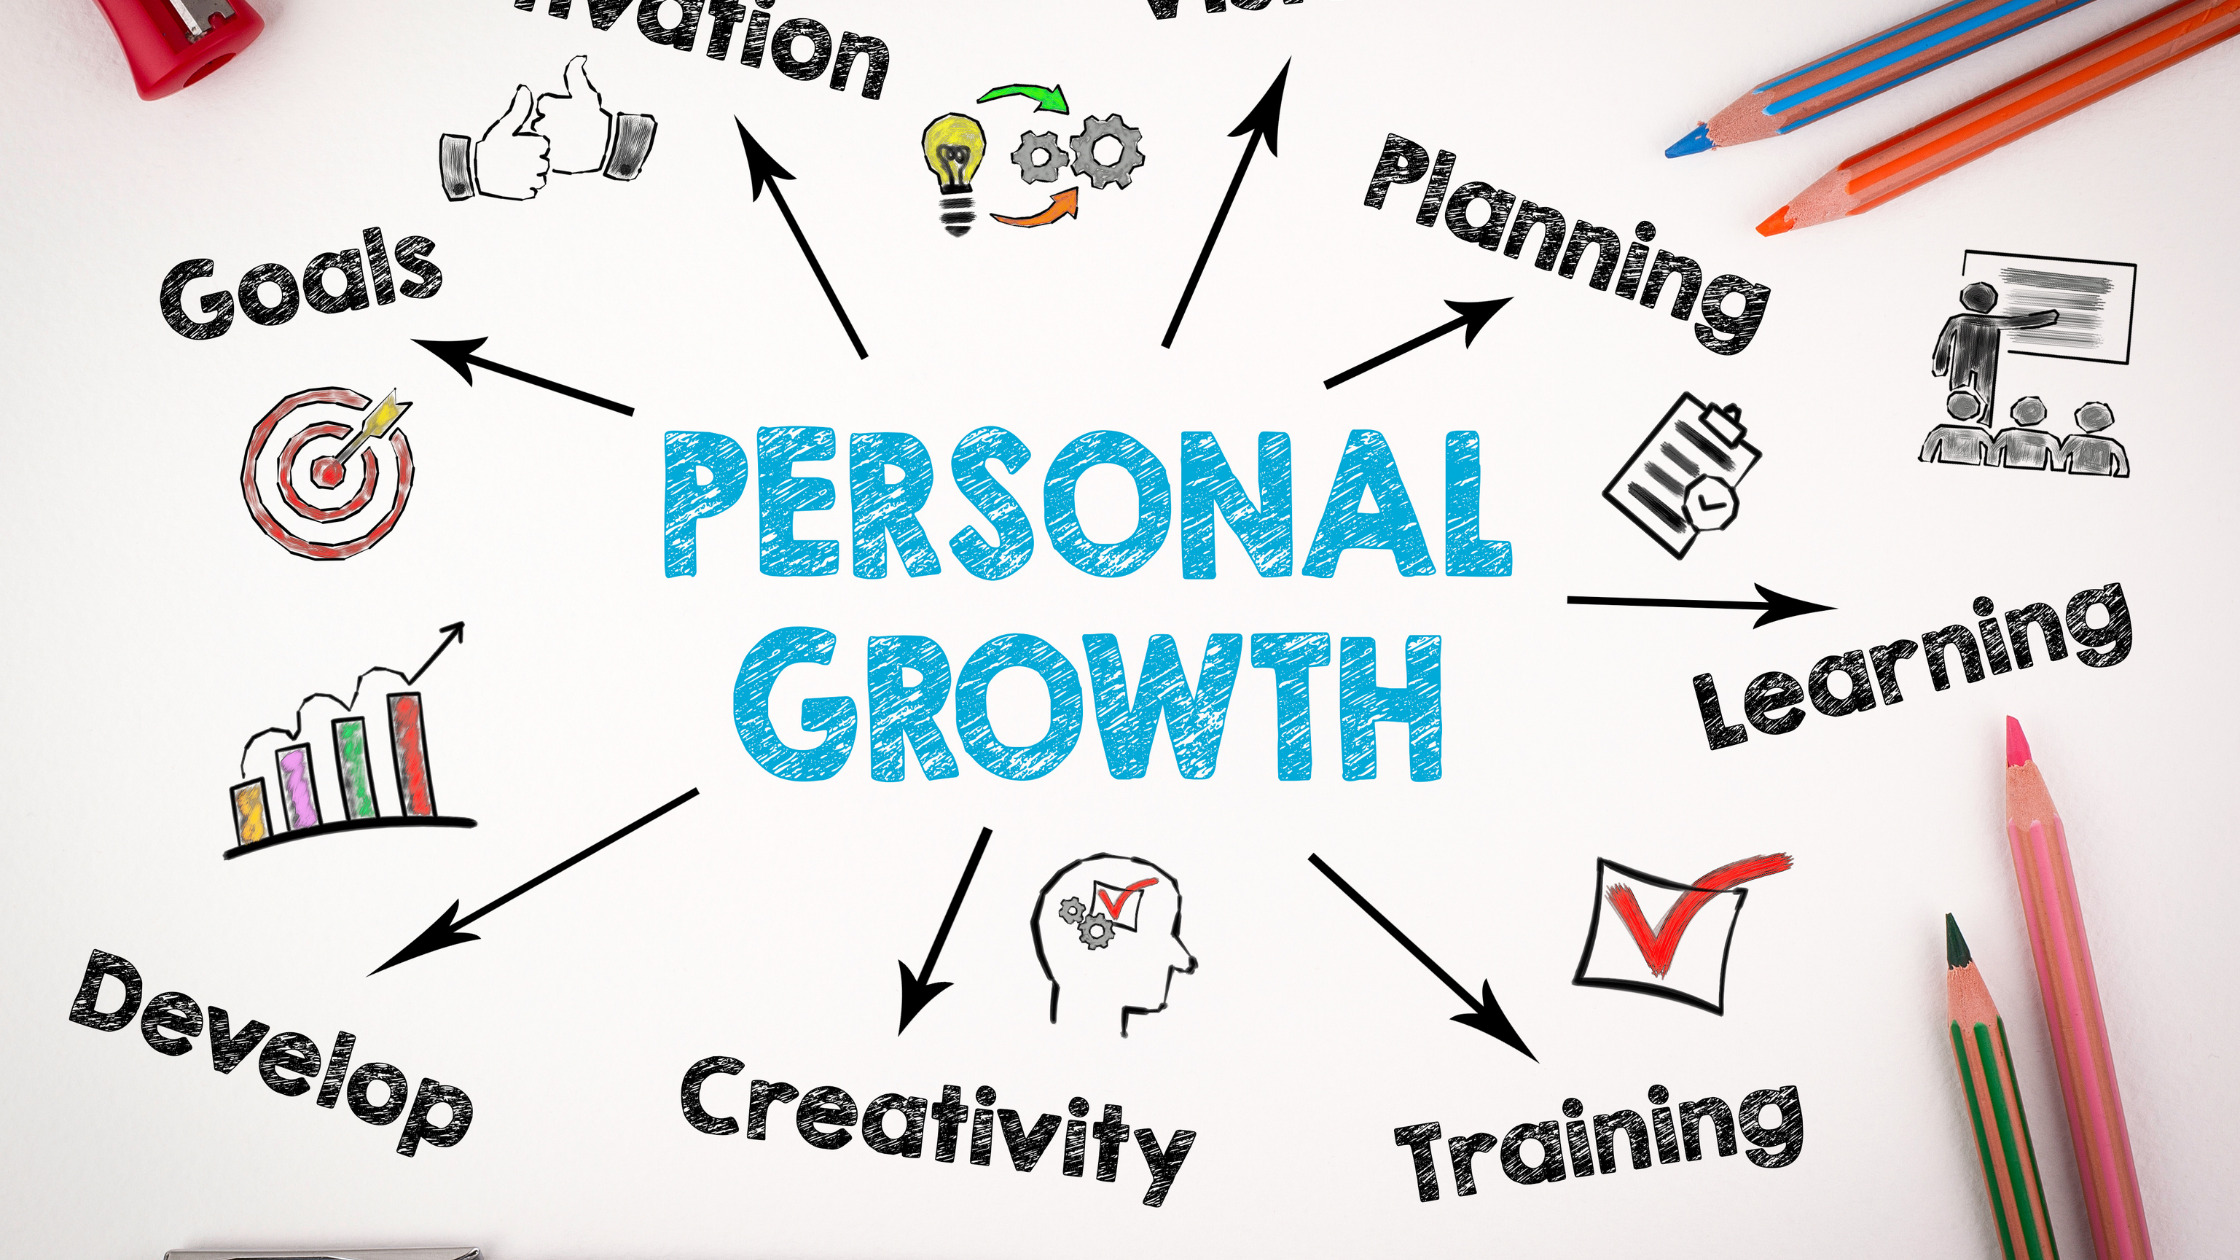 6 Simple Things To Work On That Improve Personal Growth